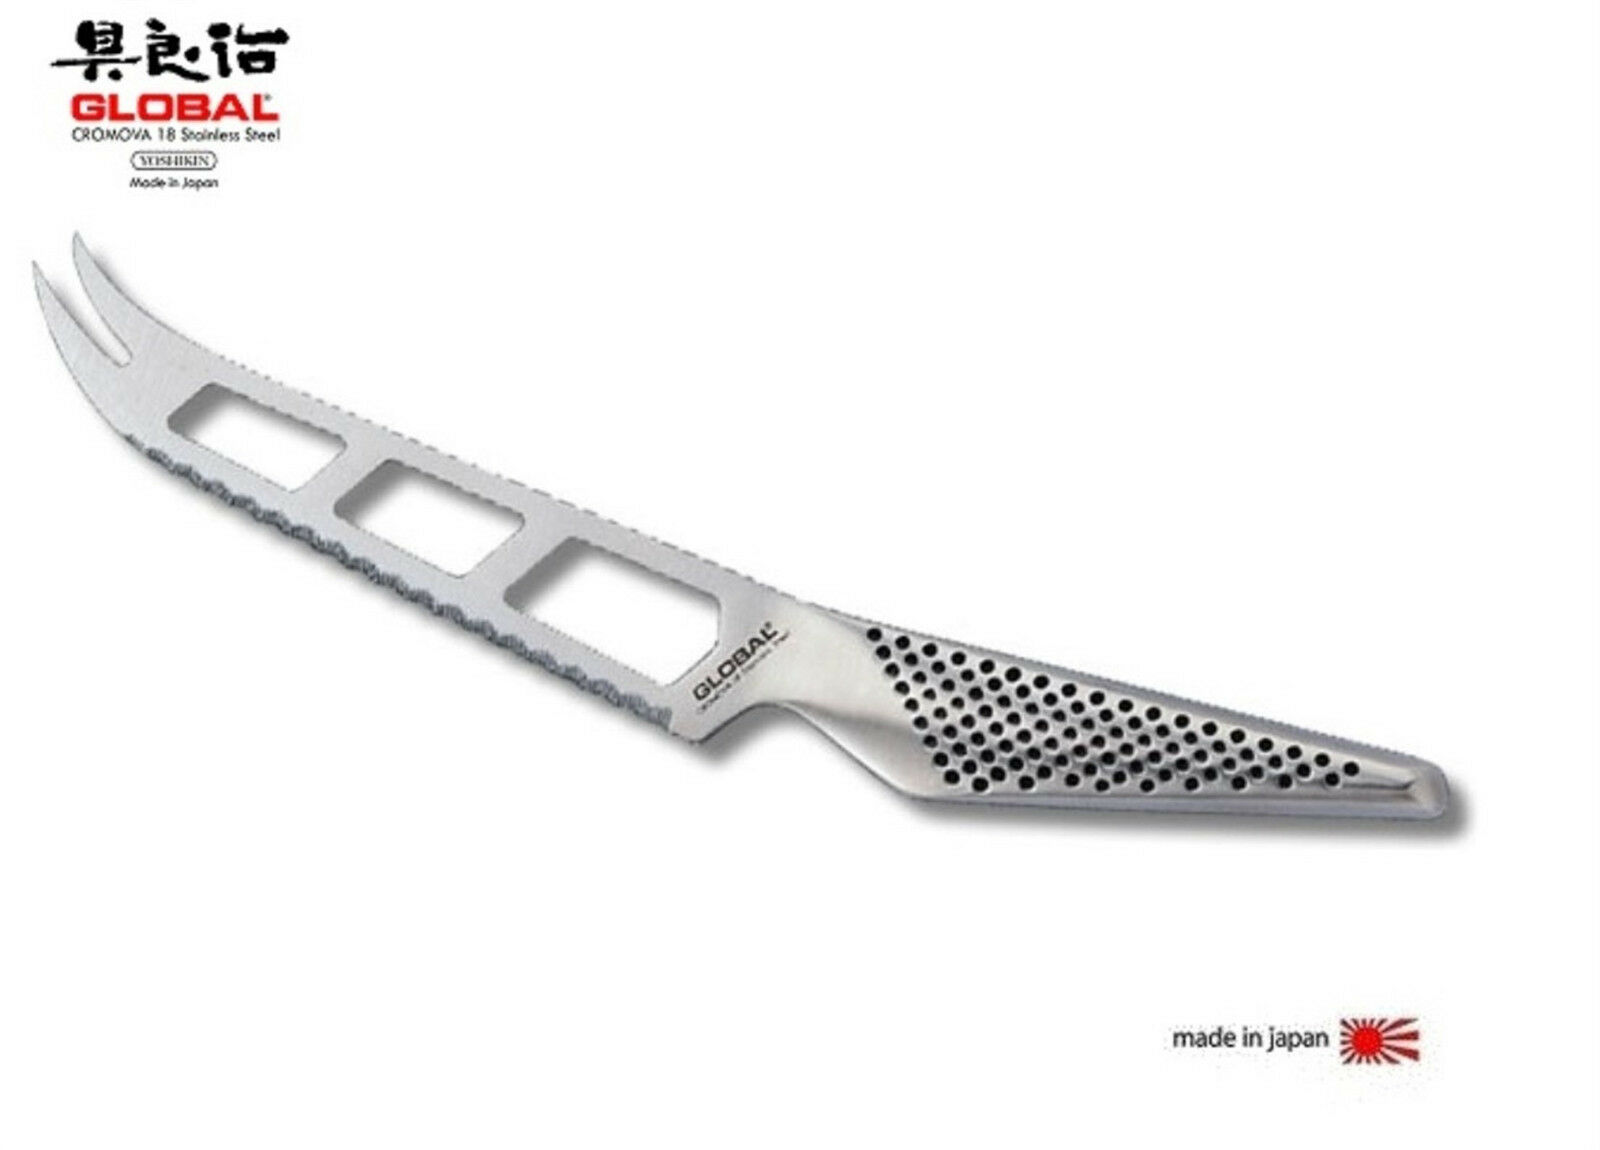 Coltello Global GS10R  Cheese knife  coltello per formaggi (forato)  cm.14